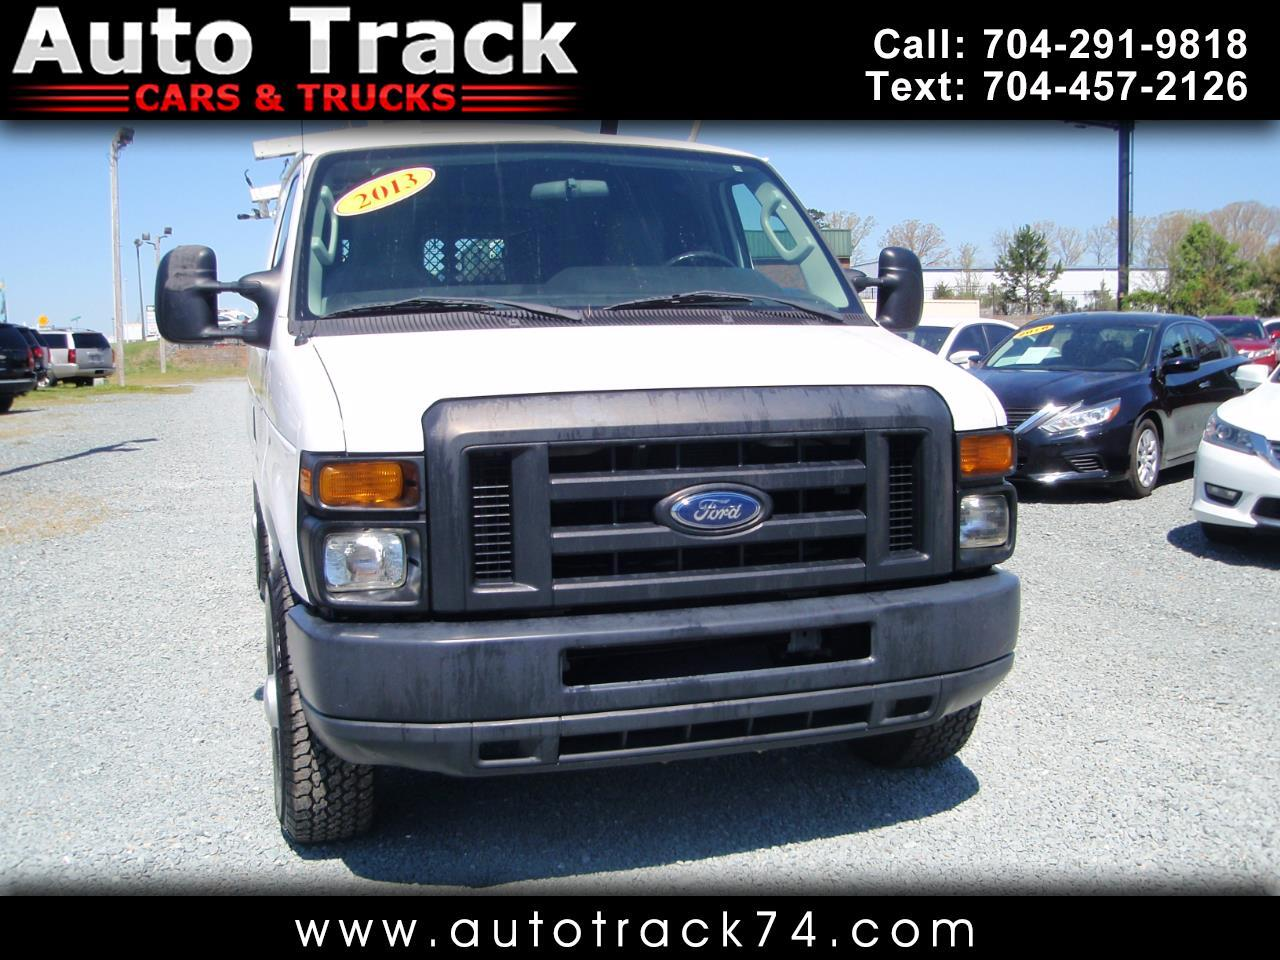 2013 Ford Econoline Cargo Van E-250 Recreational